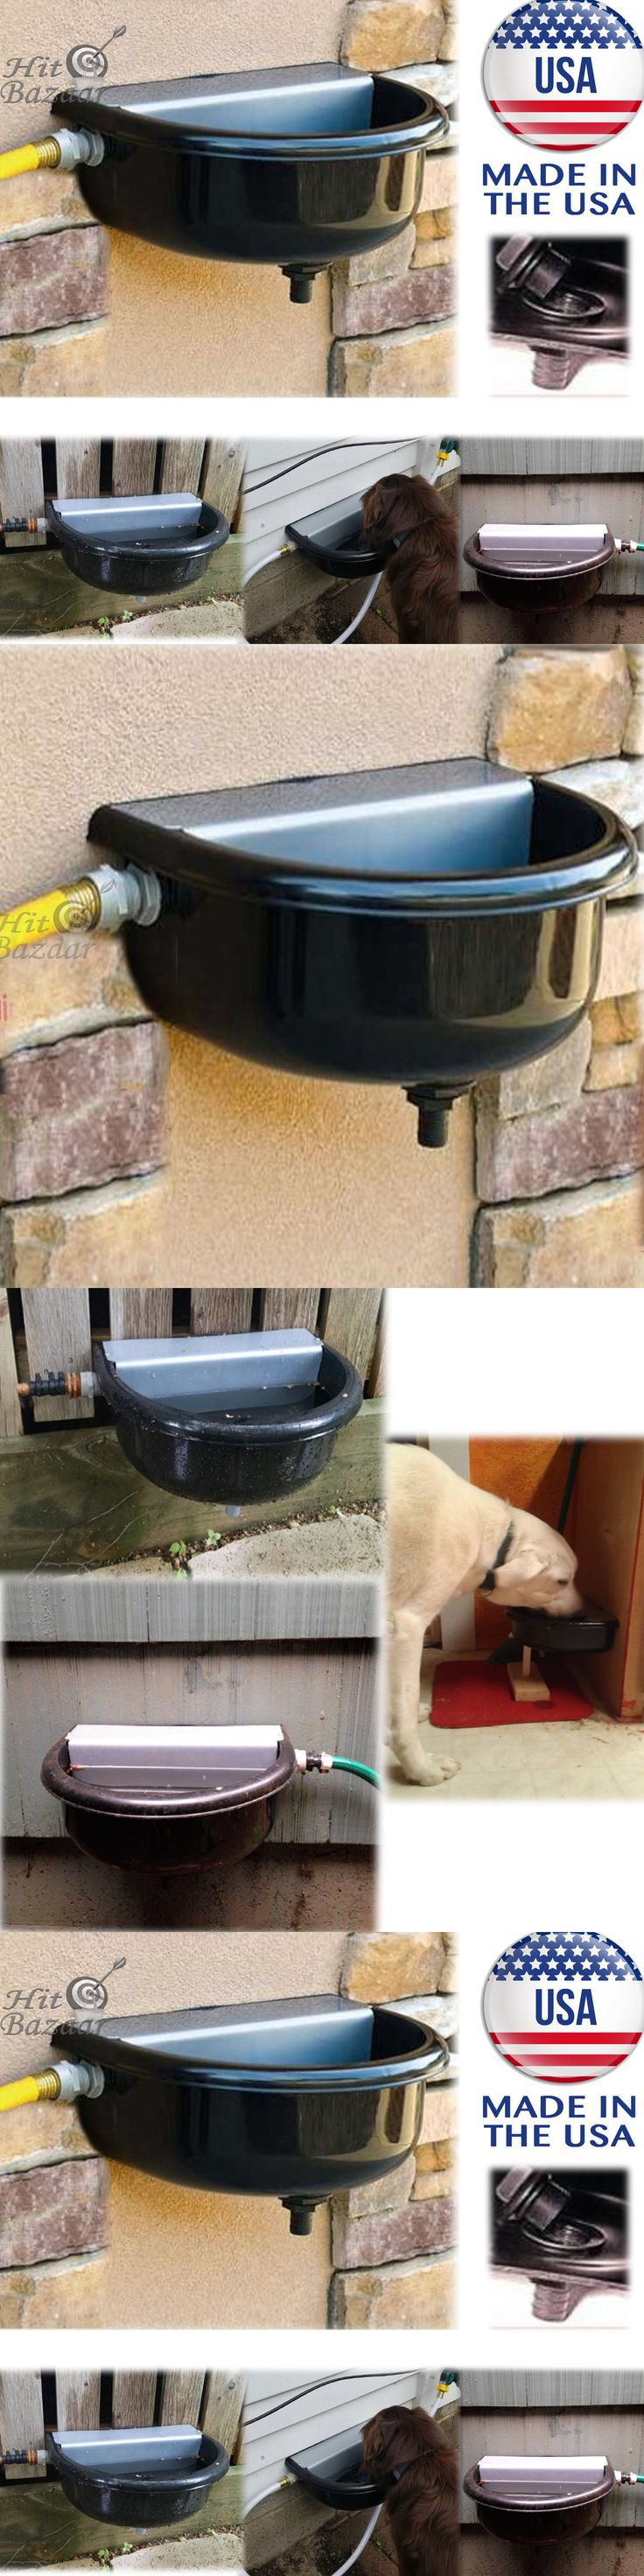 Cavalier round led illuminated bathroom mirror battery powered ebay - Dishes Feeders And Fountains 177789 Automatic Pet Waterer Fountain Water Dispenser Dog Horse Drink Outdoor